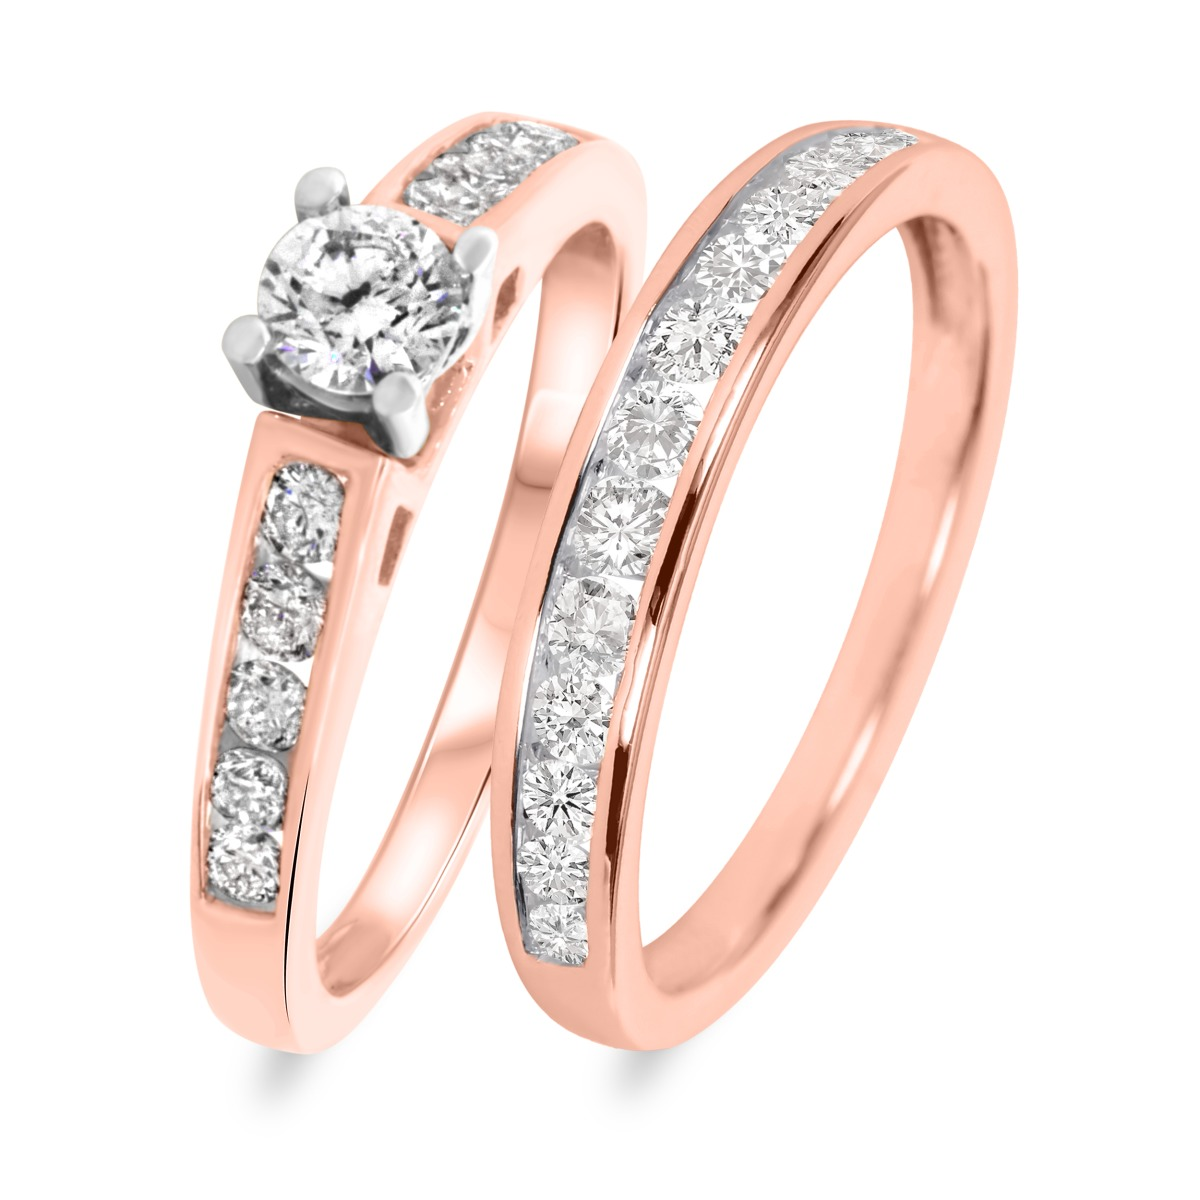 1 CT. T.W. Diamond Ladies' Bridal Wedding Ring Set 14K Rose Gold